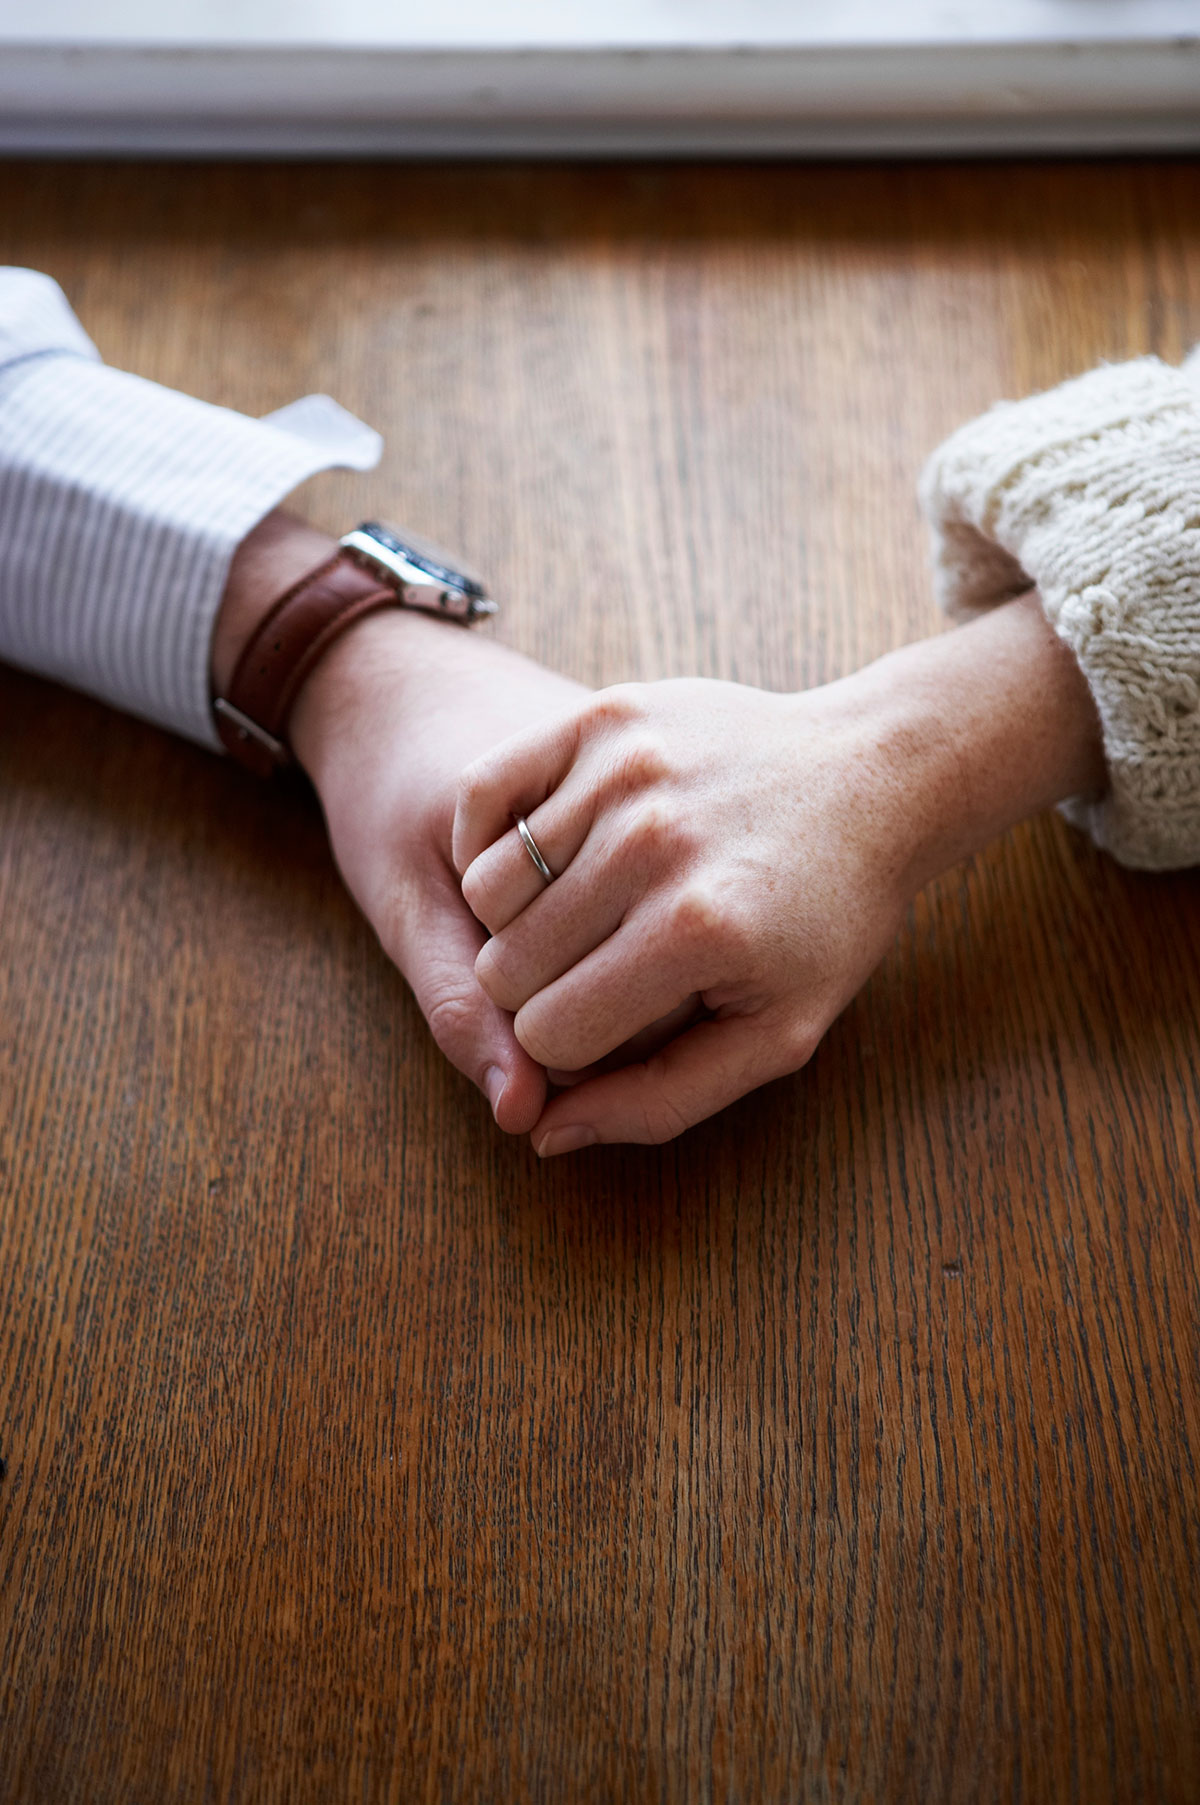 couple-holding-hands-on-table